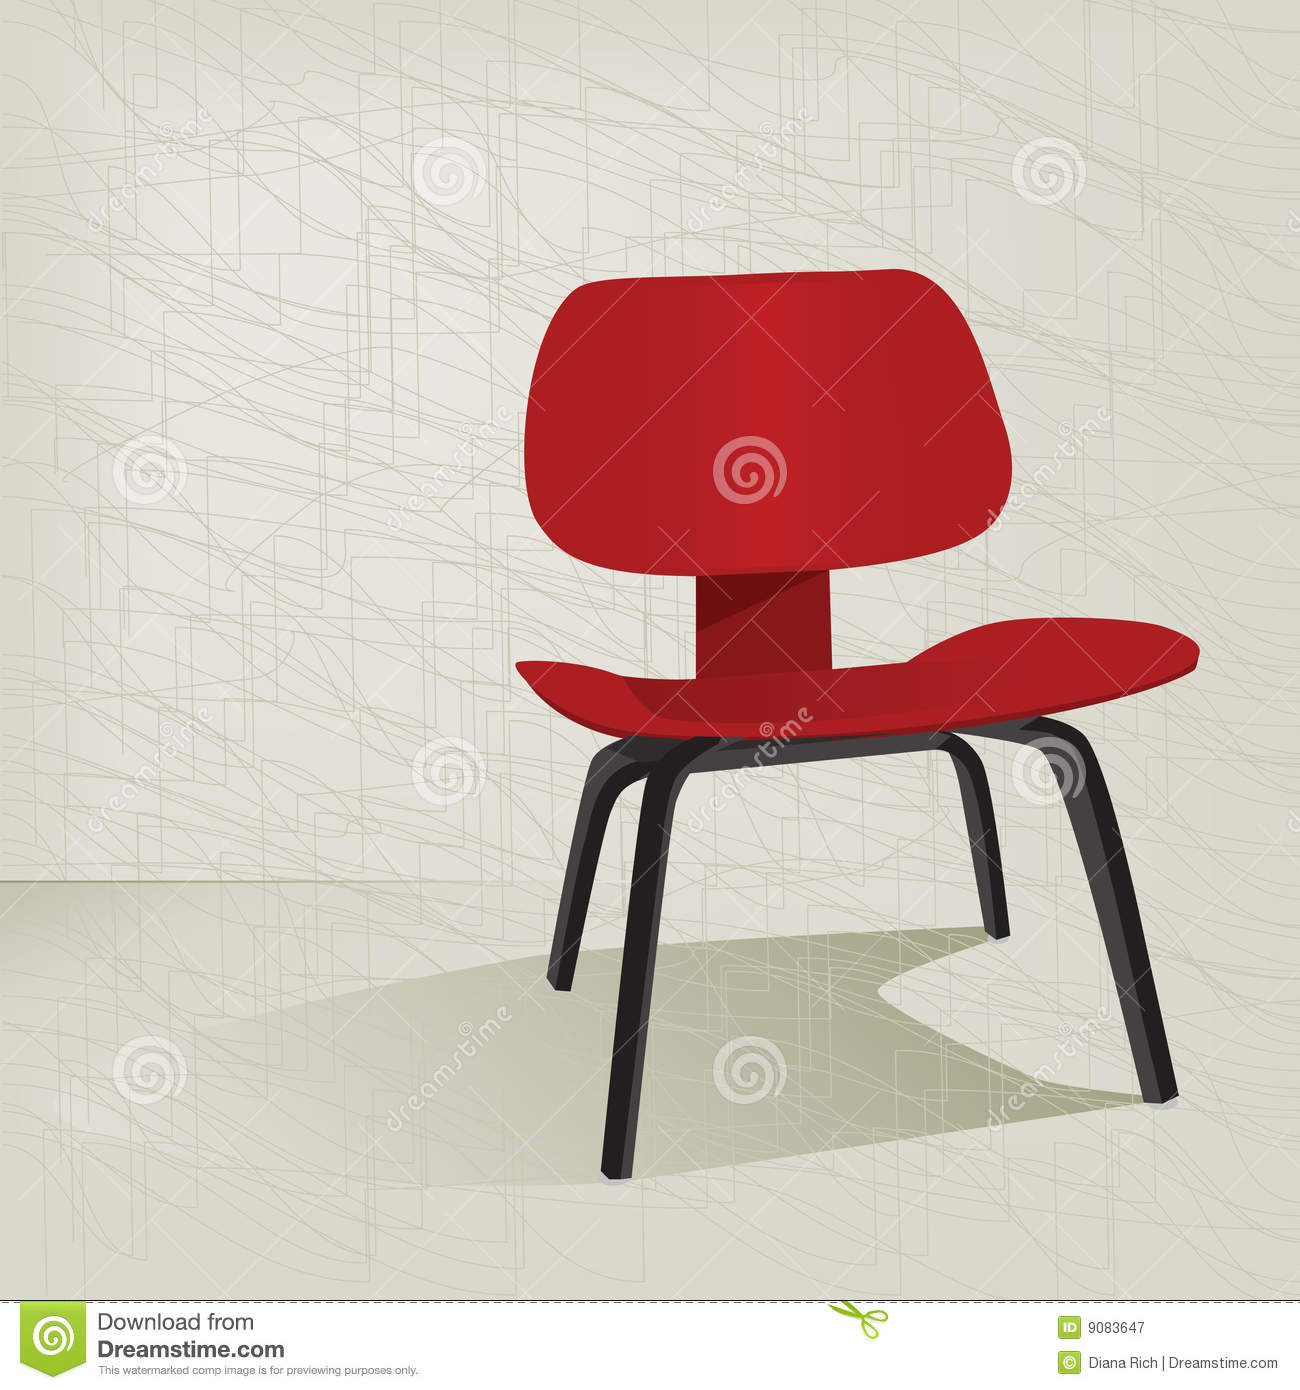 red retro 50s chair royalty free stock photography image